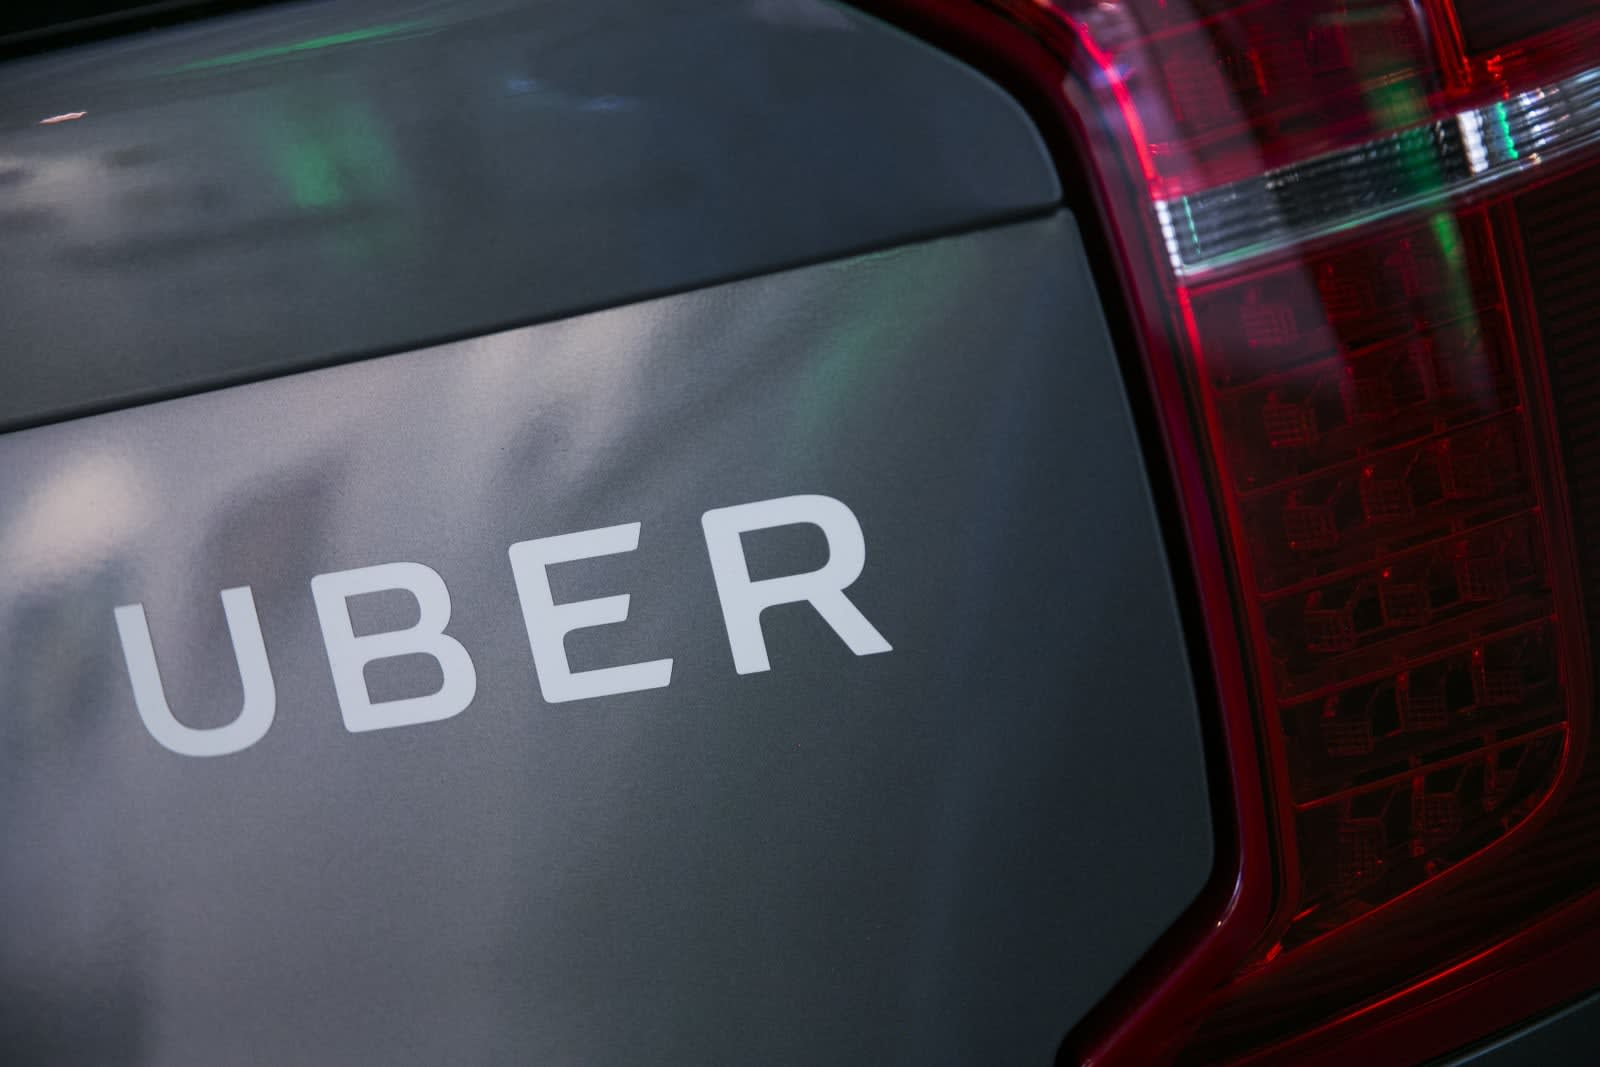 Uber will give free rides in the city that loses the Super Bowl